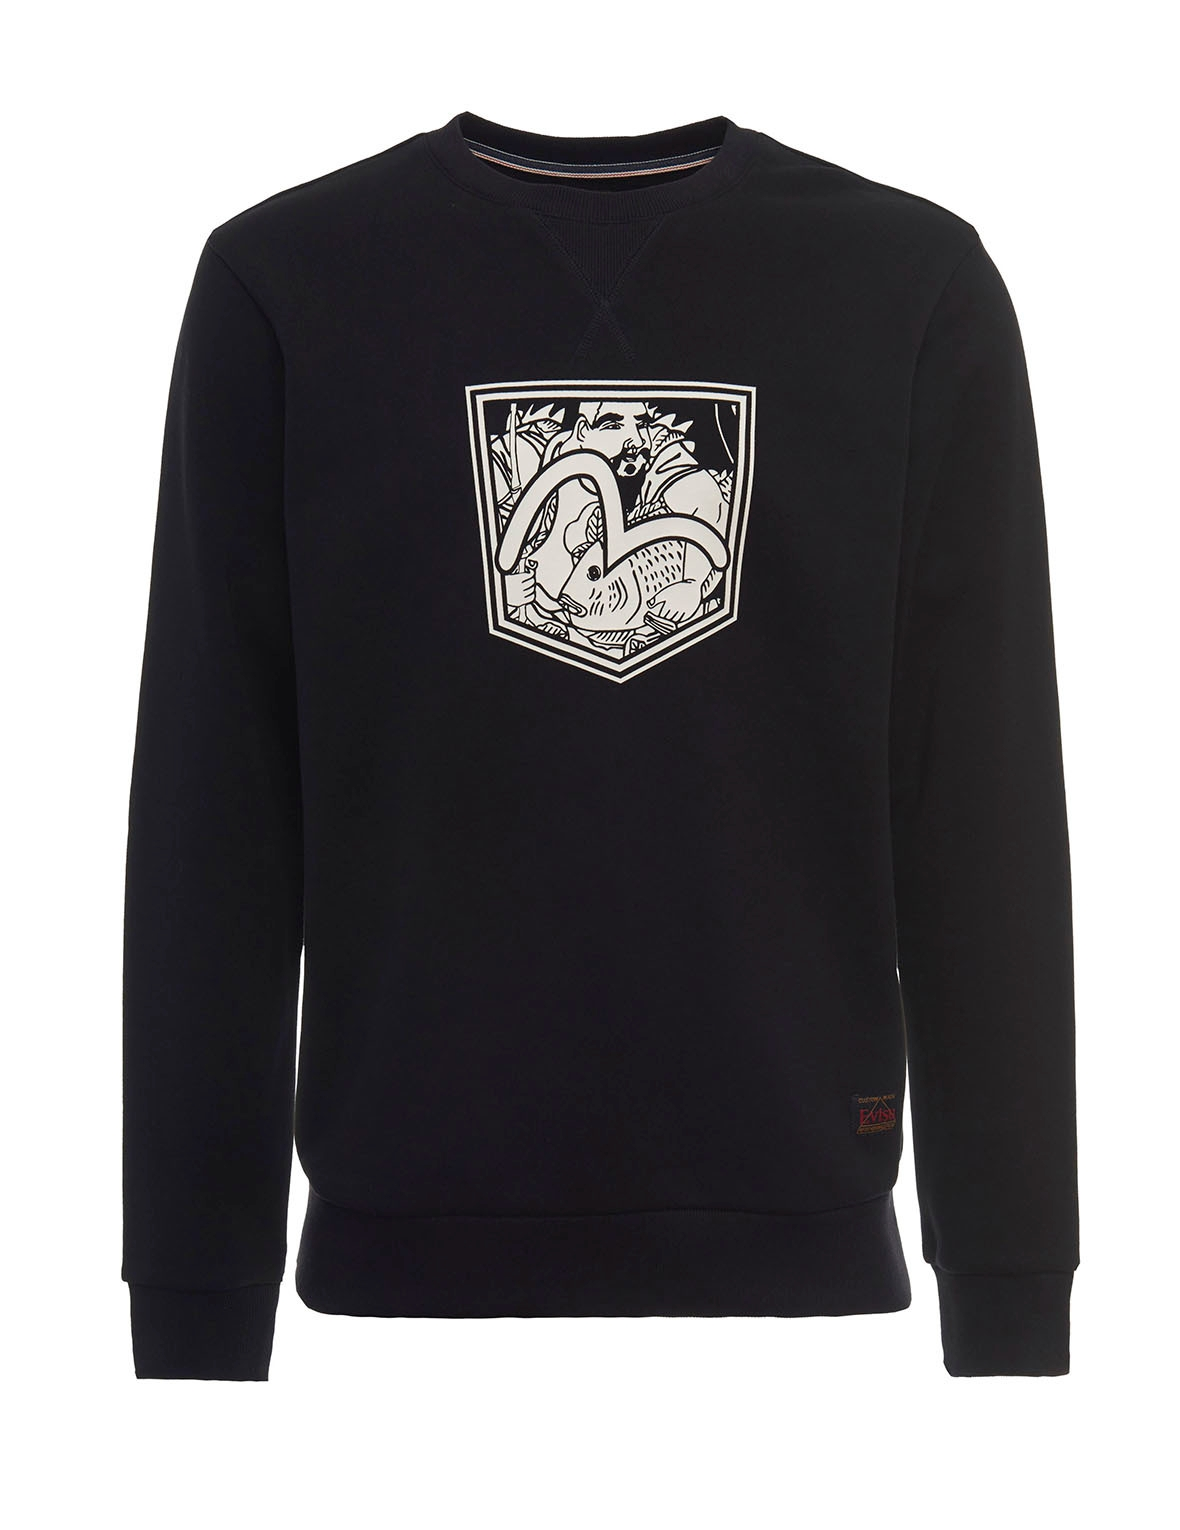 EVISU FISHERMAN SEAGULL POCKET PRINT SWEATSHIRT